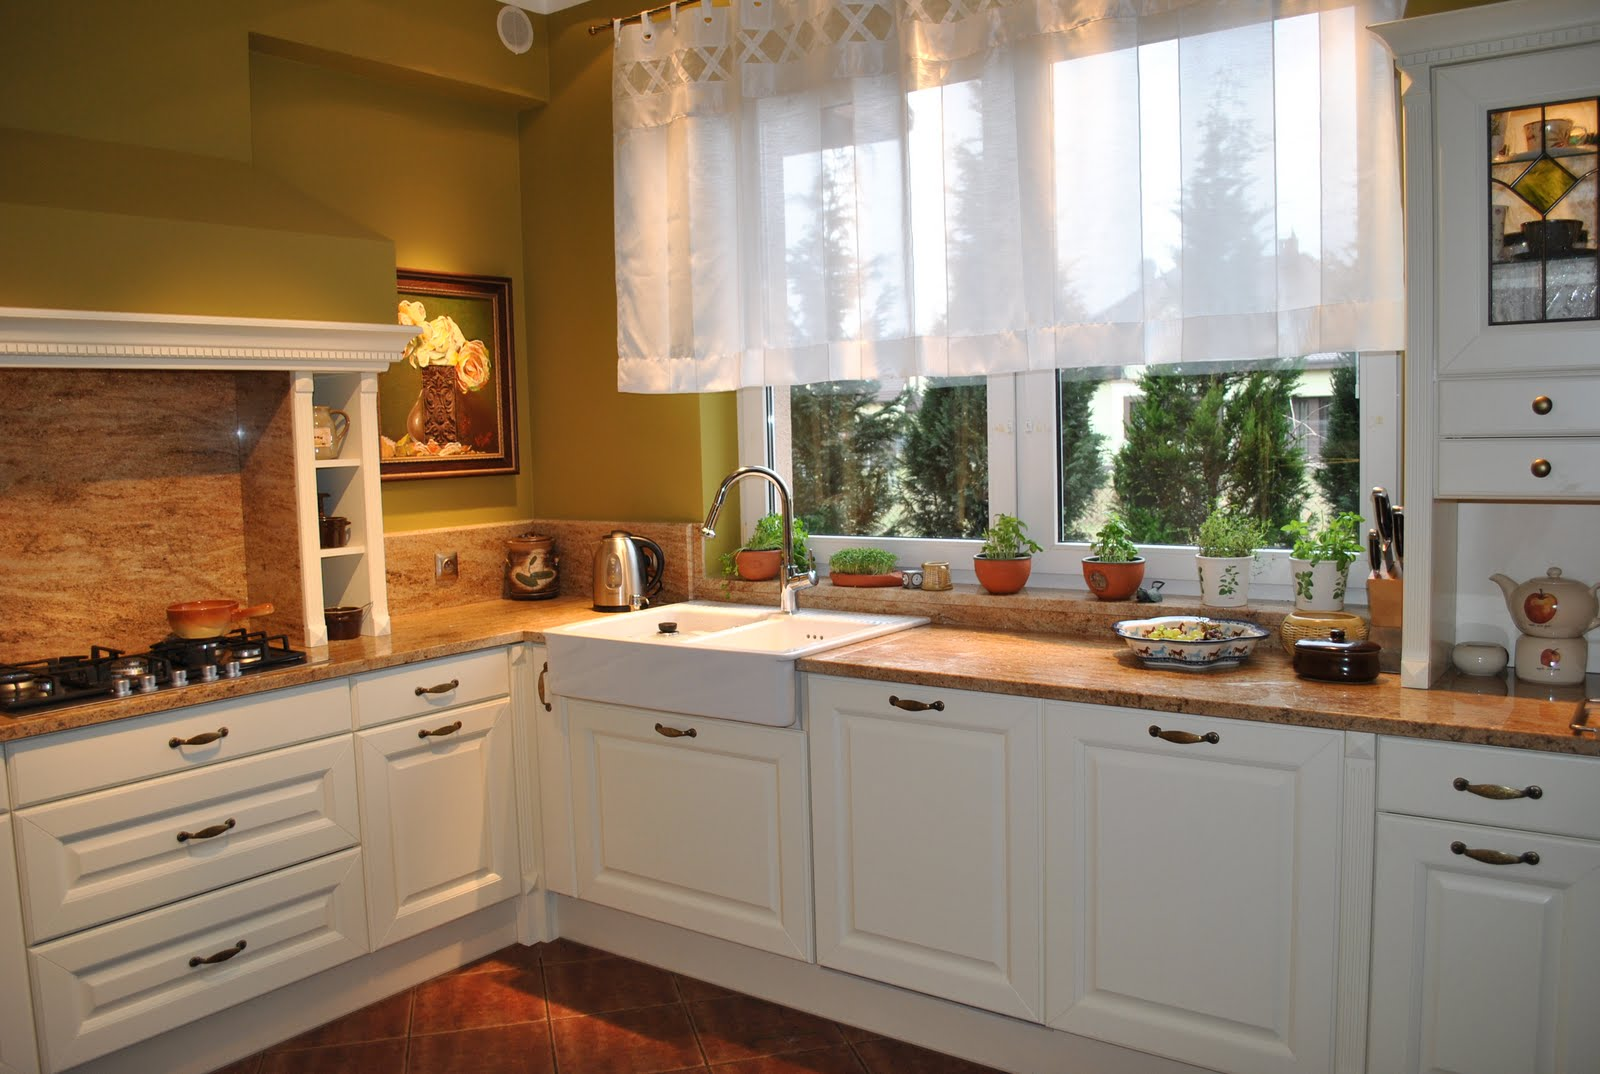 english country style kitchen mtdesign. Black Bedroom Furniture Sets. Home Design Ideas